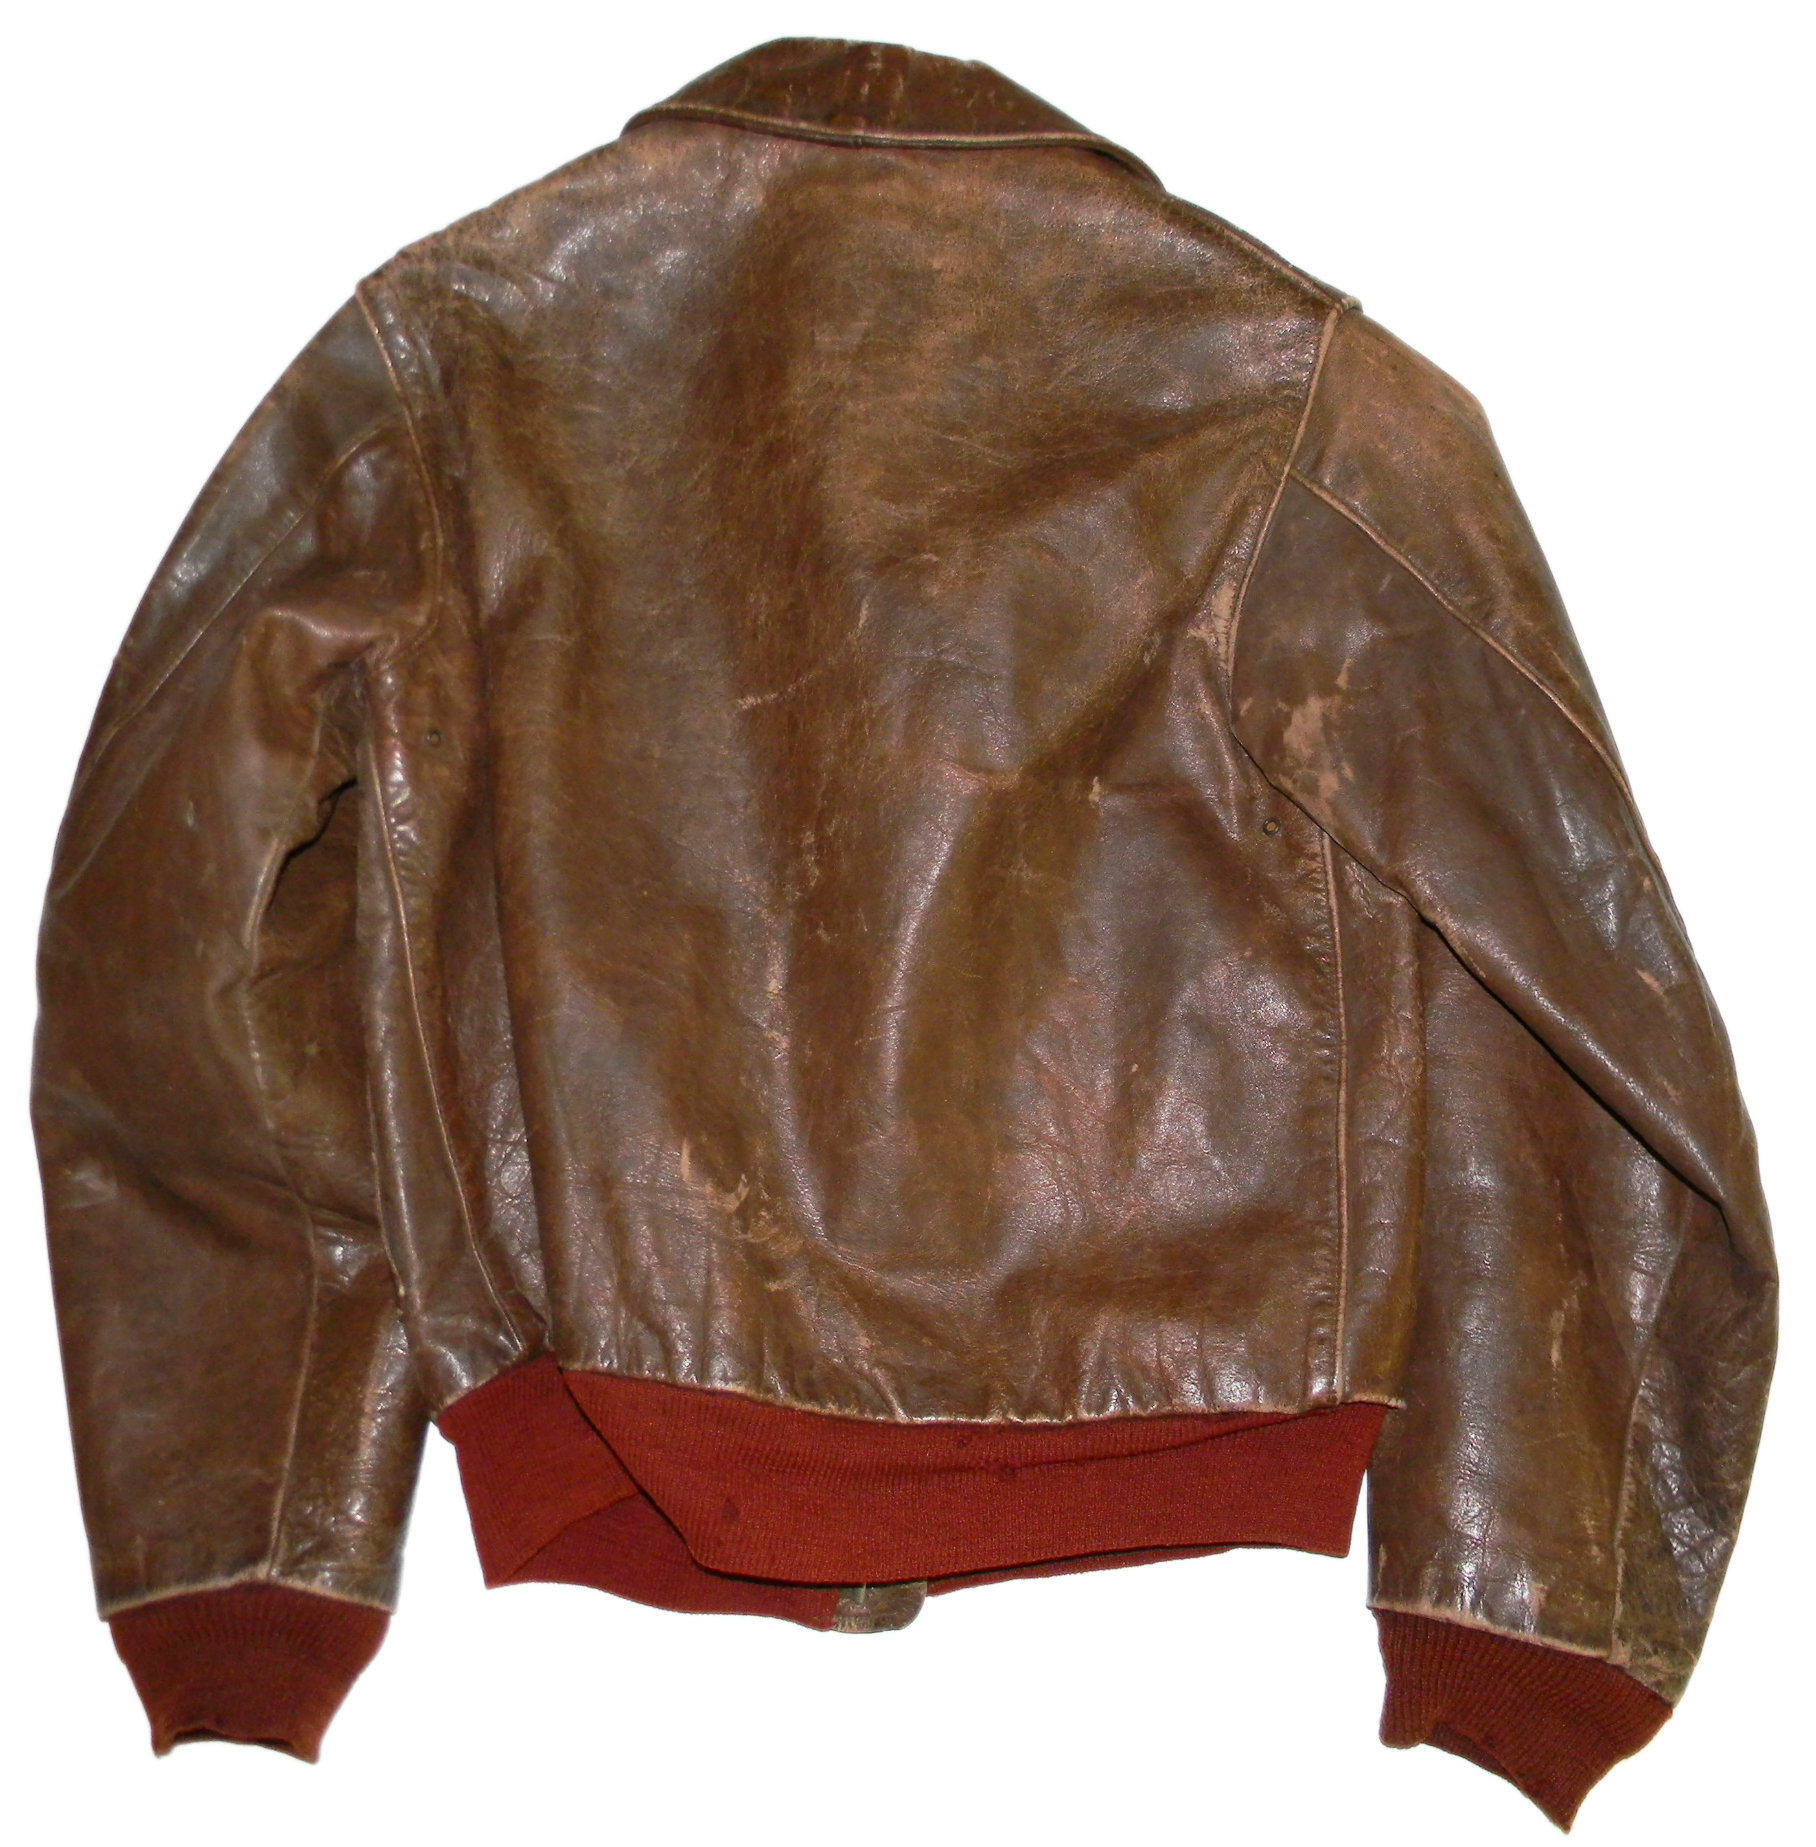 AAF Airborne Troop pilot A-2 jacket